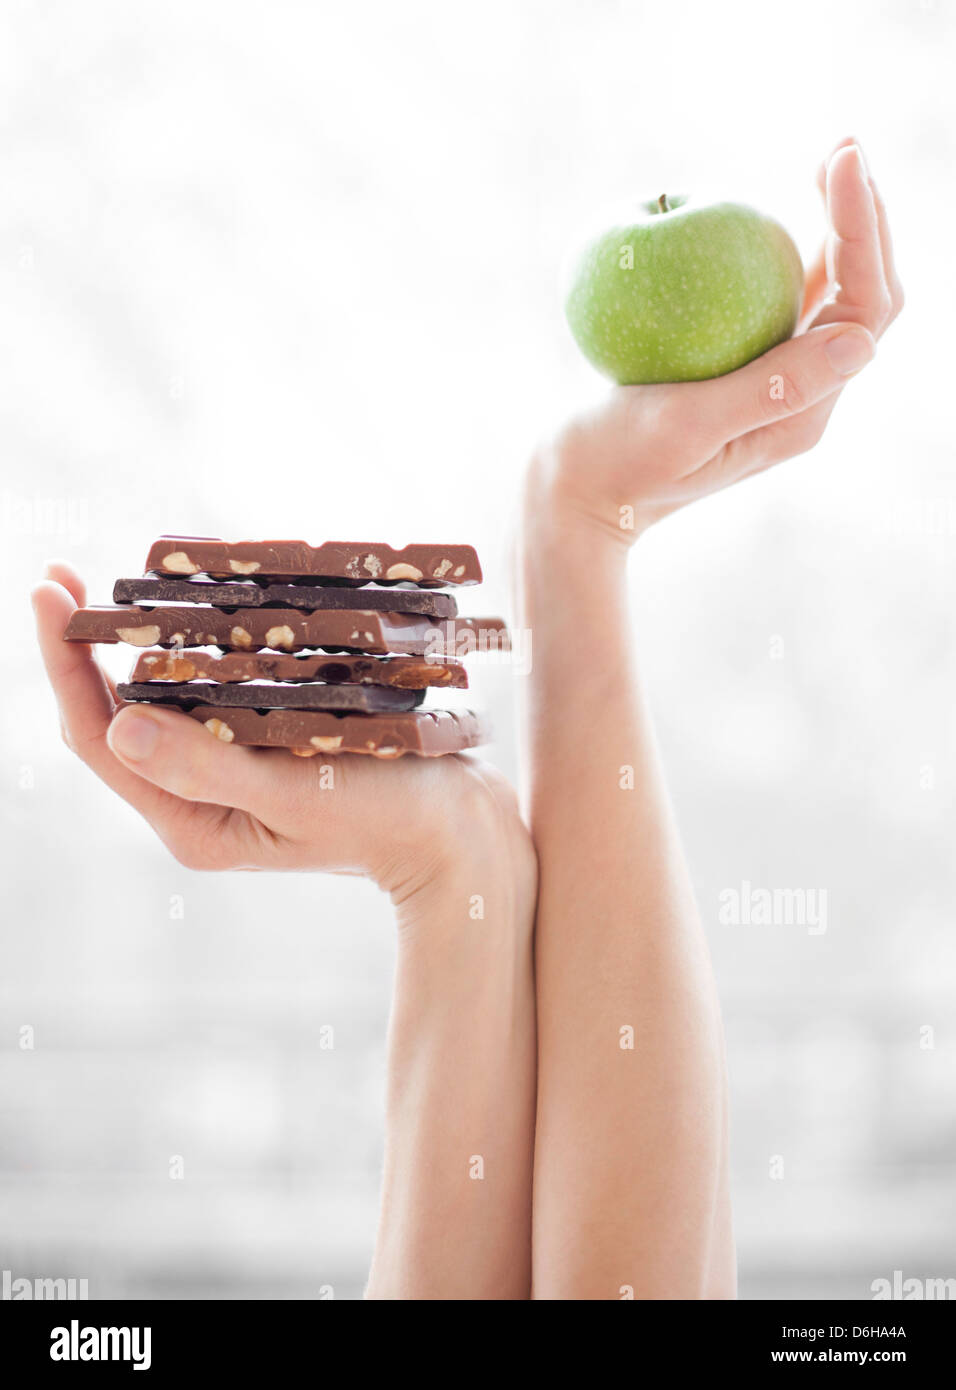 Balanced diet, conceptual image - Stock Image